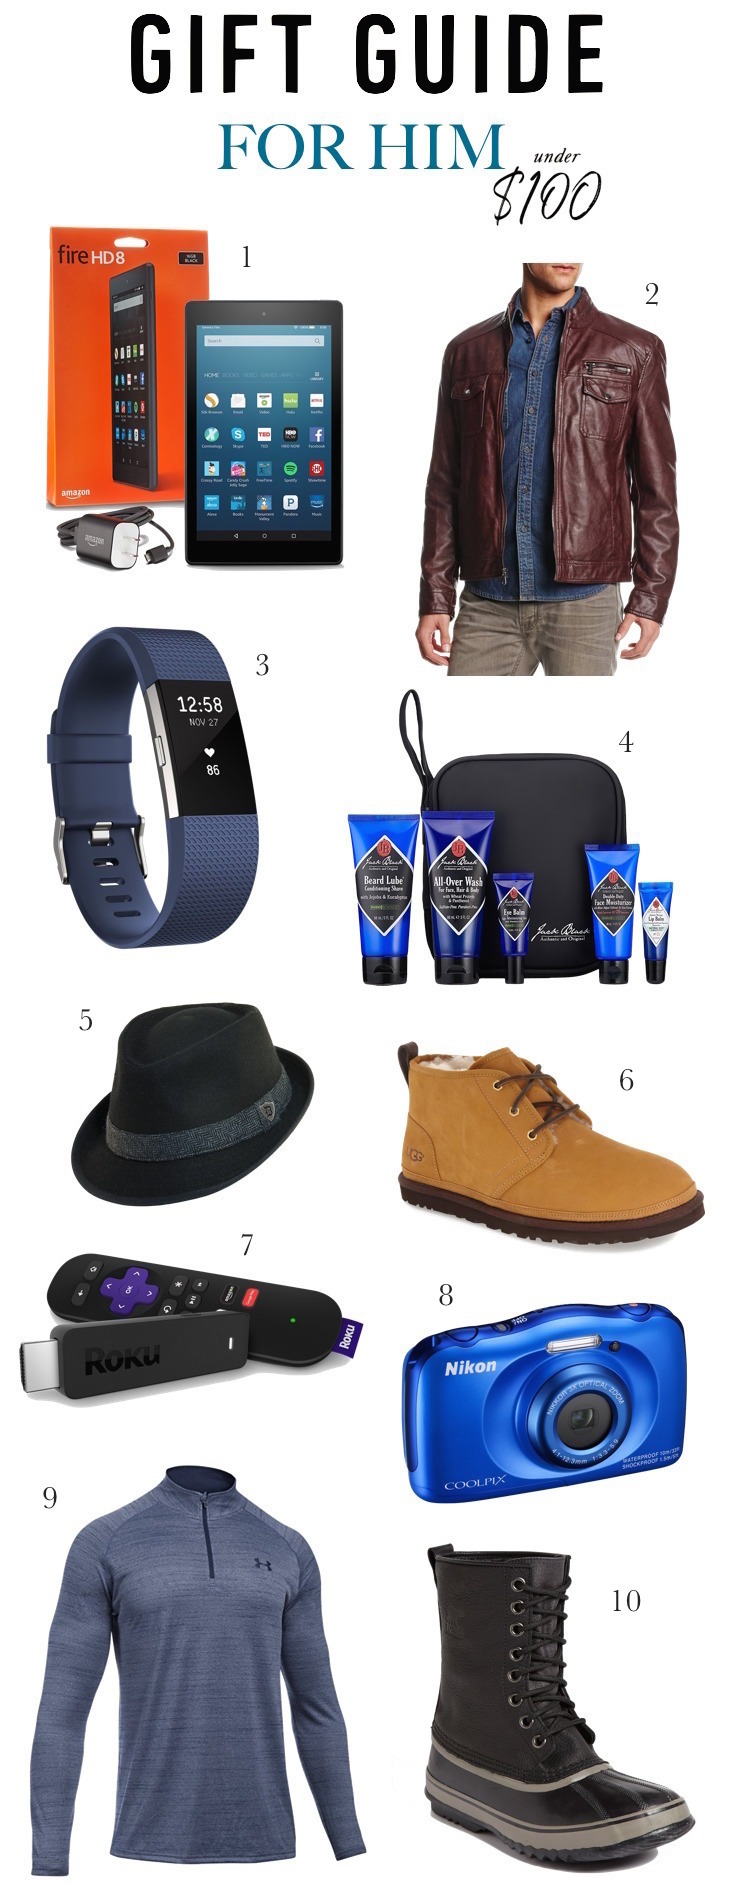 Looking for Christmas gift ideas for your husband, dad, boyfriend or brother? Click to see 20 stylish, useful and affordable holiday gift ideas for him that are sure to please!